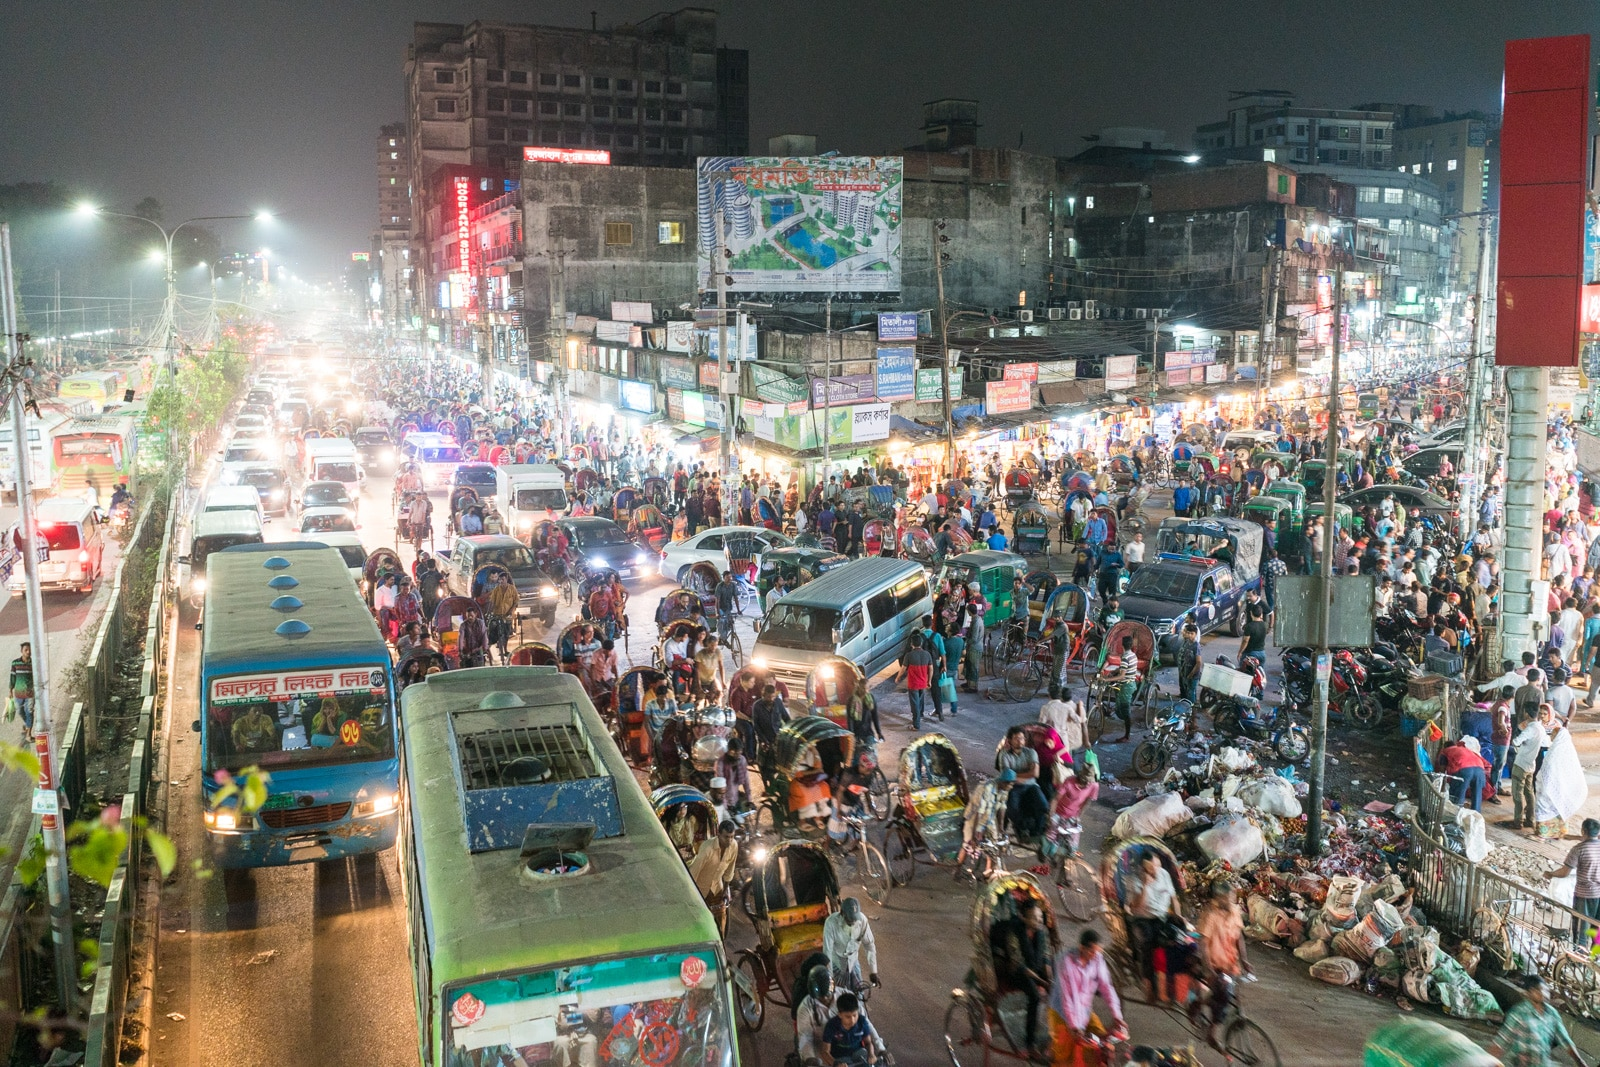 Traveling as a woman in Bangladesh - Chaos and traffic near New Market, Dhaka - Lost With Purpose travel blog